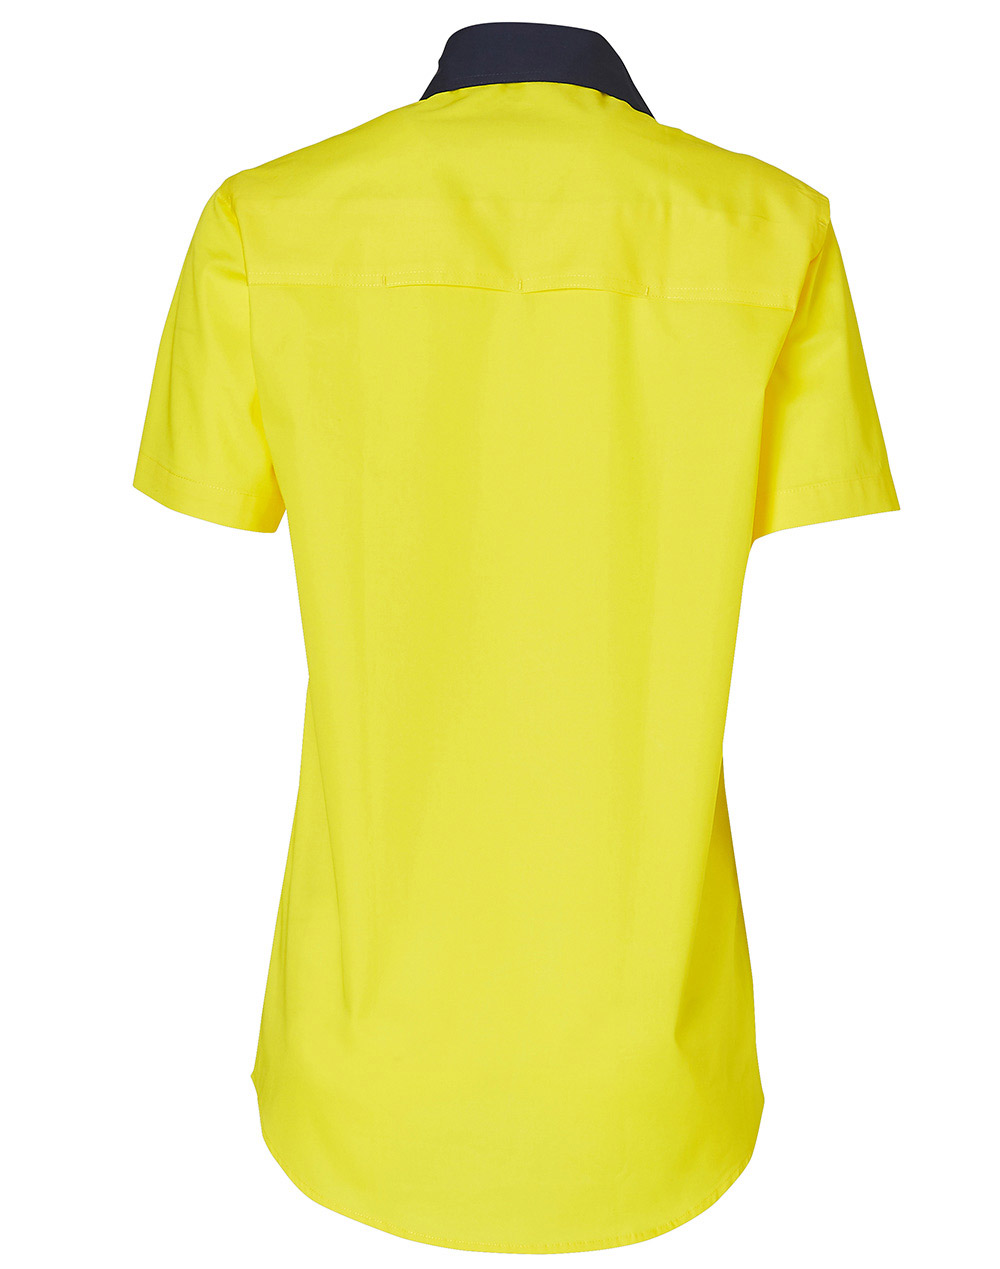 https://s3-ap-southeast-1.amazonaws.com/ws-imgs/WORKWEAR/SW63_YellowNavy_Back.jpg